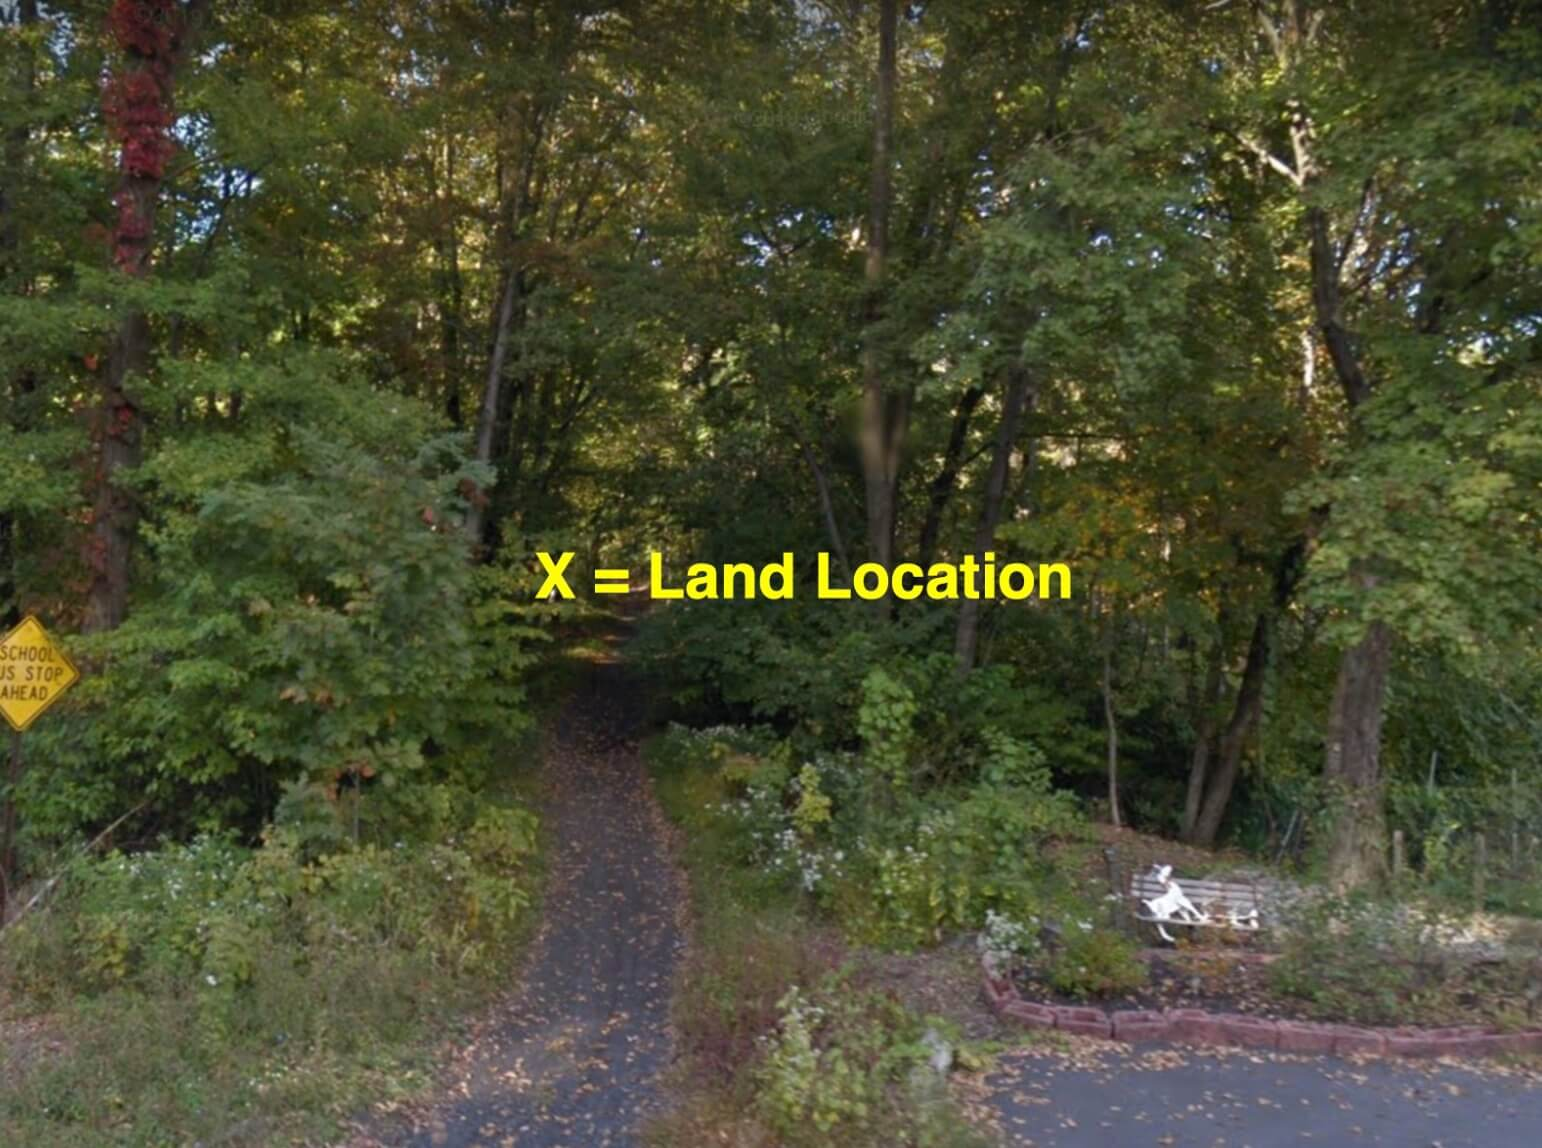 Land for Sale- Public Water/Septic Capability- Land with Water/Septic Capability